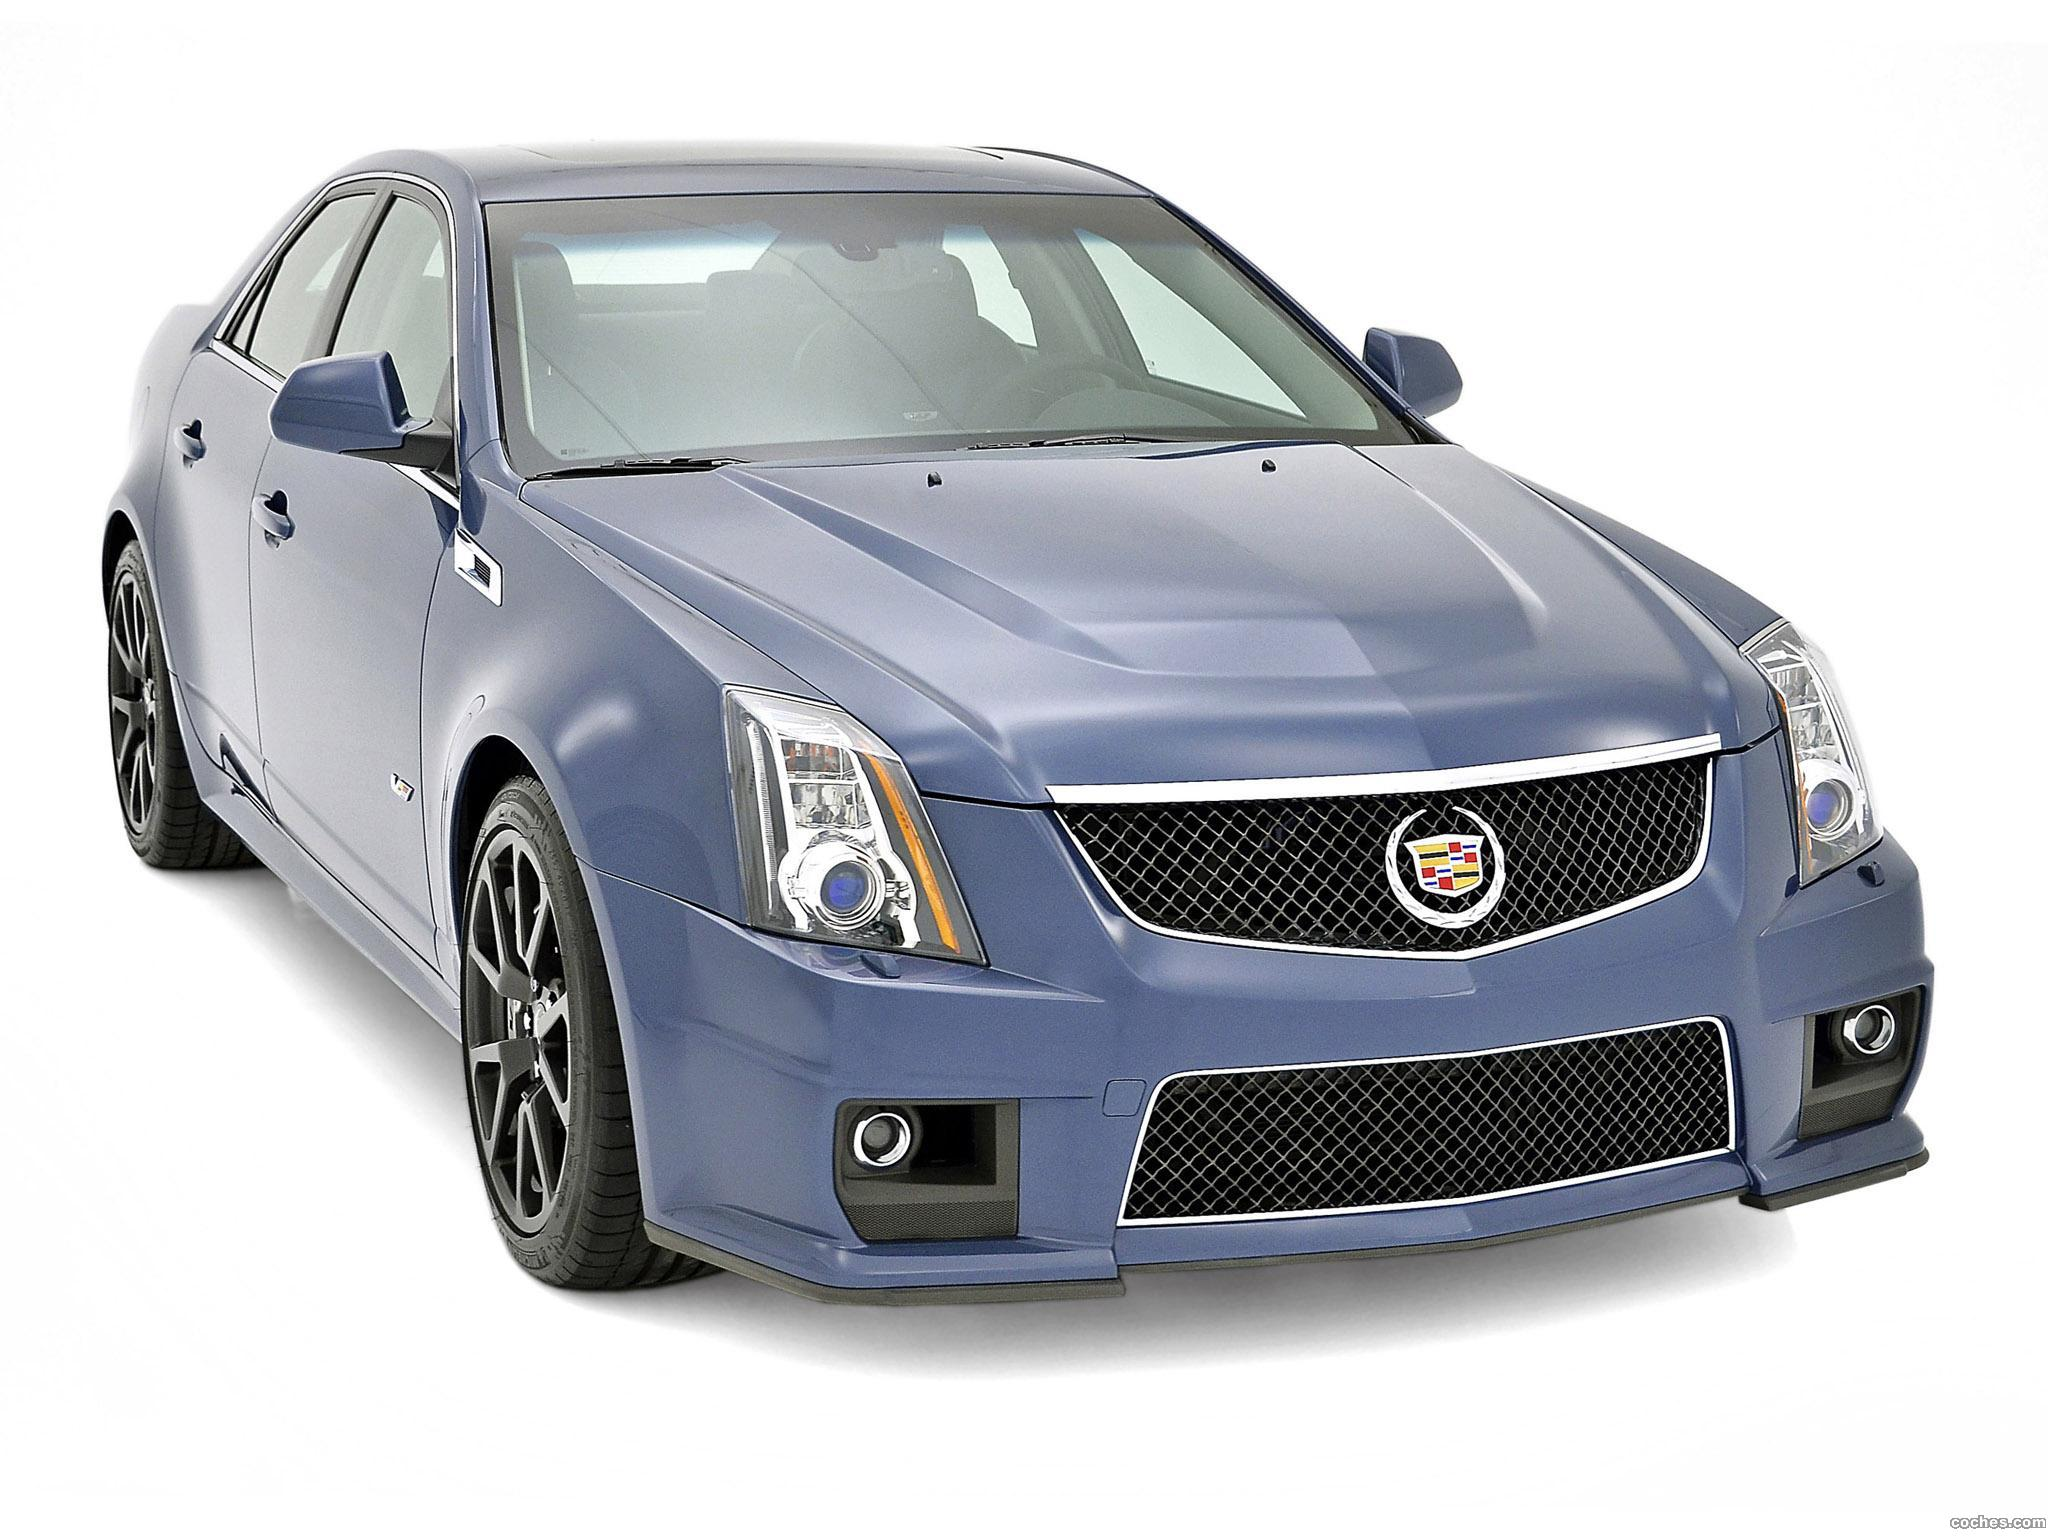 Foto 0 de Cadillac CTS-V Stealth Blue Edition 2013